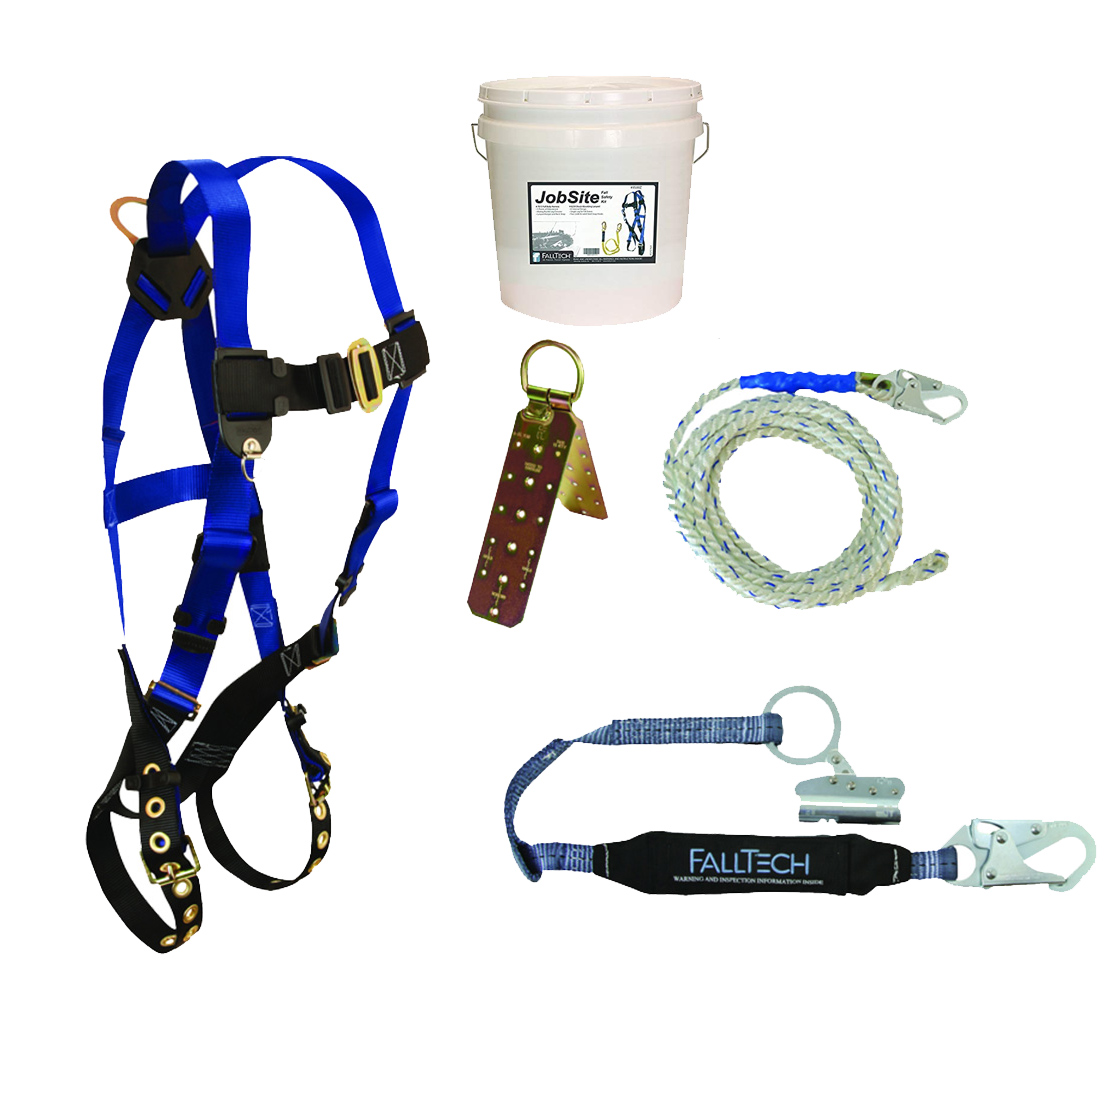 Falltech 8595a 5pc Contractor Complete Roofer S Kit